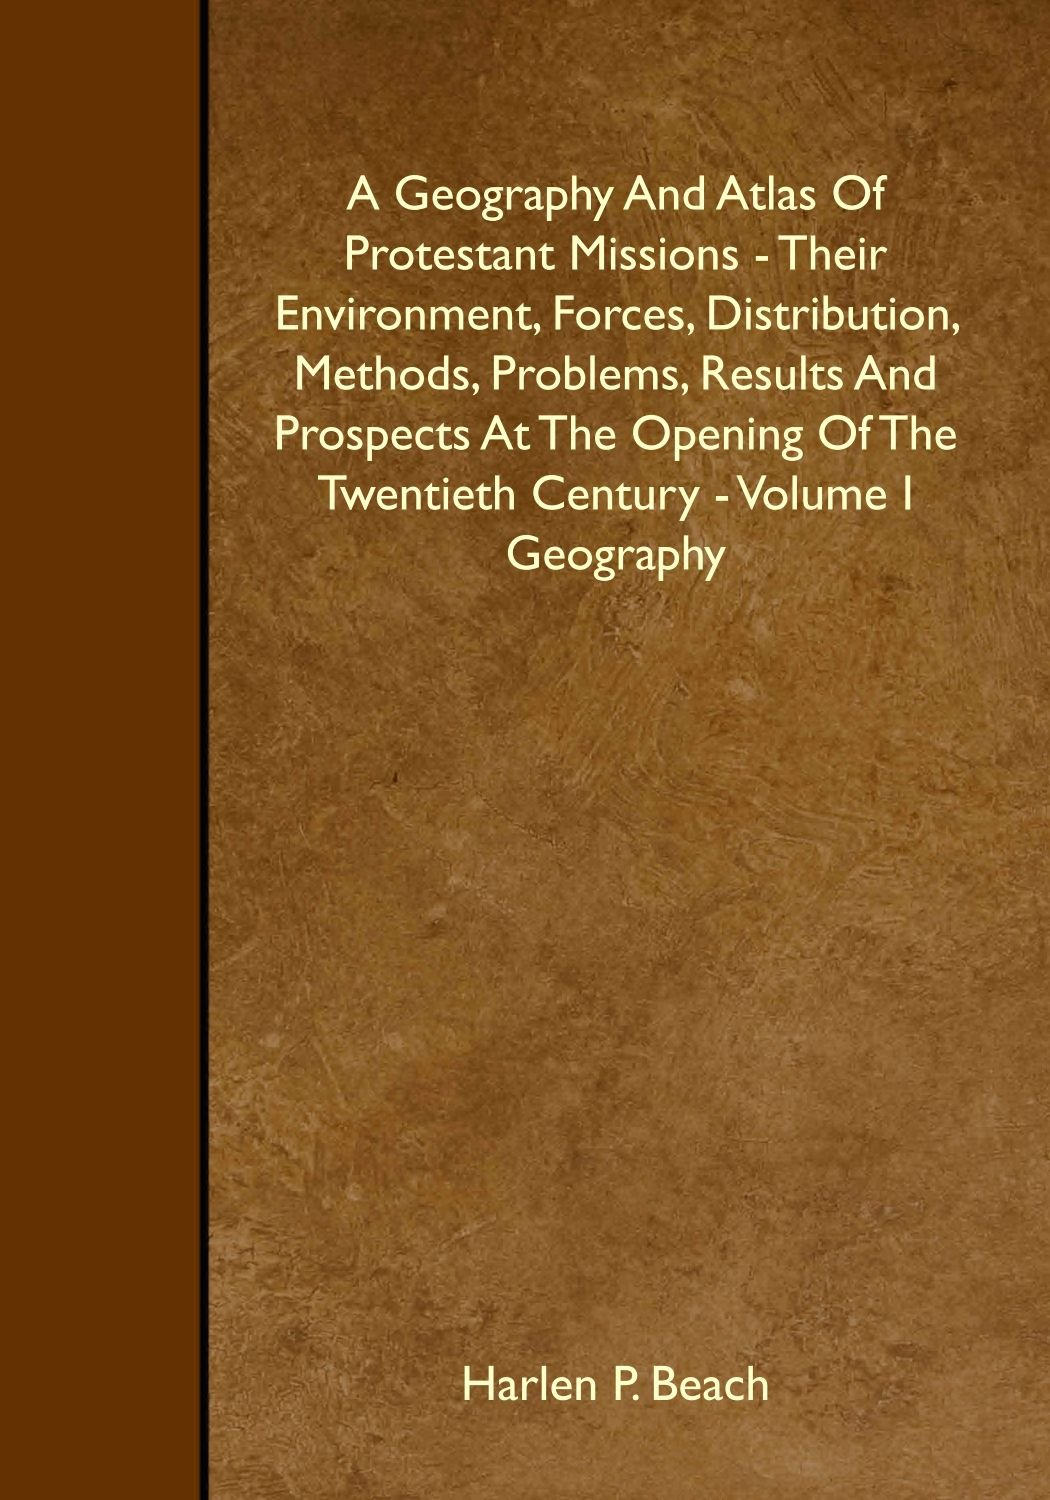 Download A Geography And Atlas Of Protestant Missions - Their Environment, Forces, Distribution, Methods, Problems, Results And Prospects At The Opening Of The Twentieth Century - Volume I Geography PDF